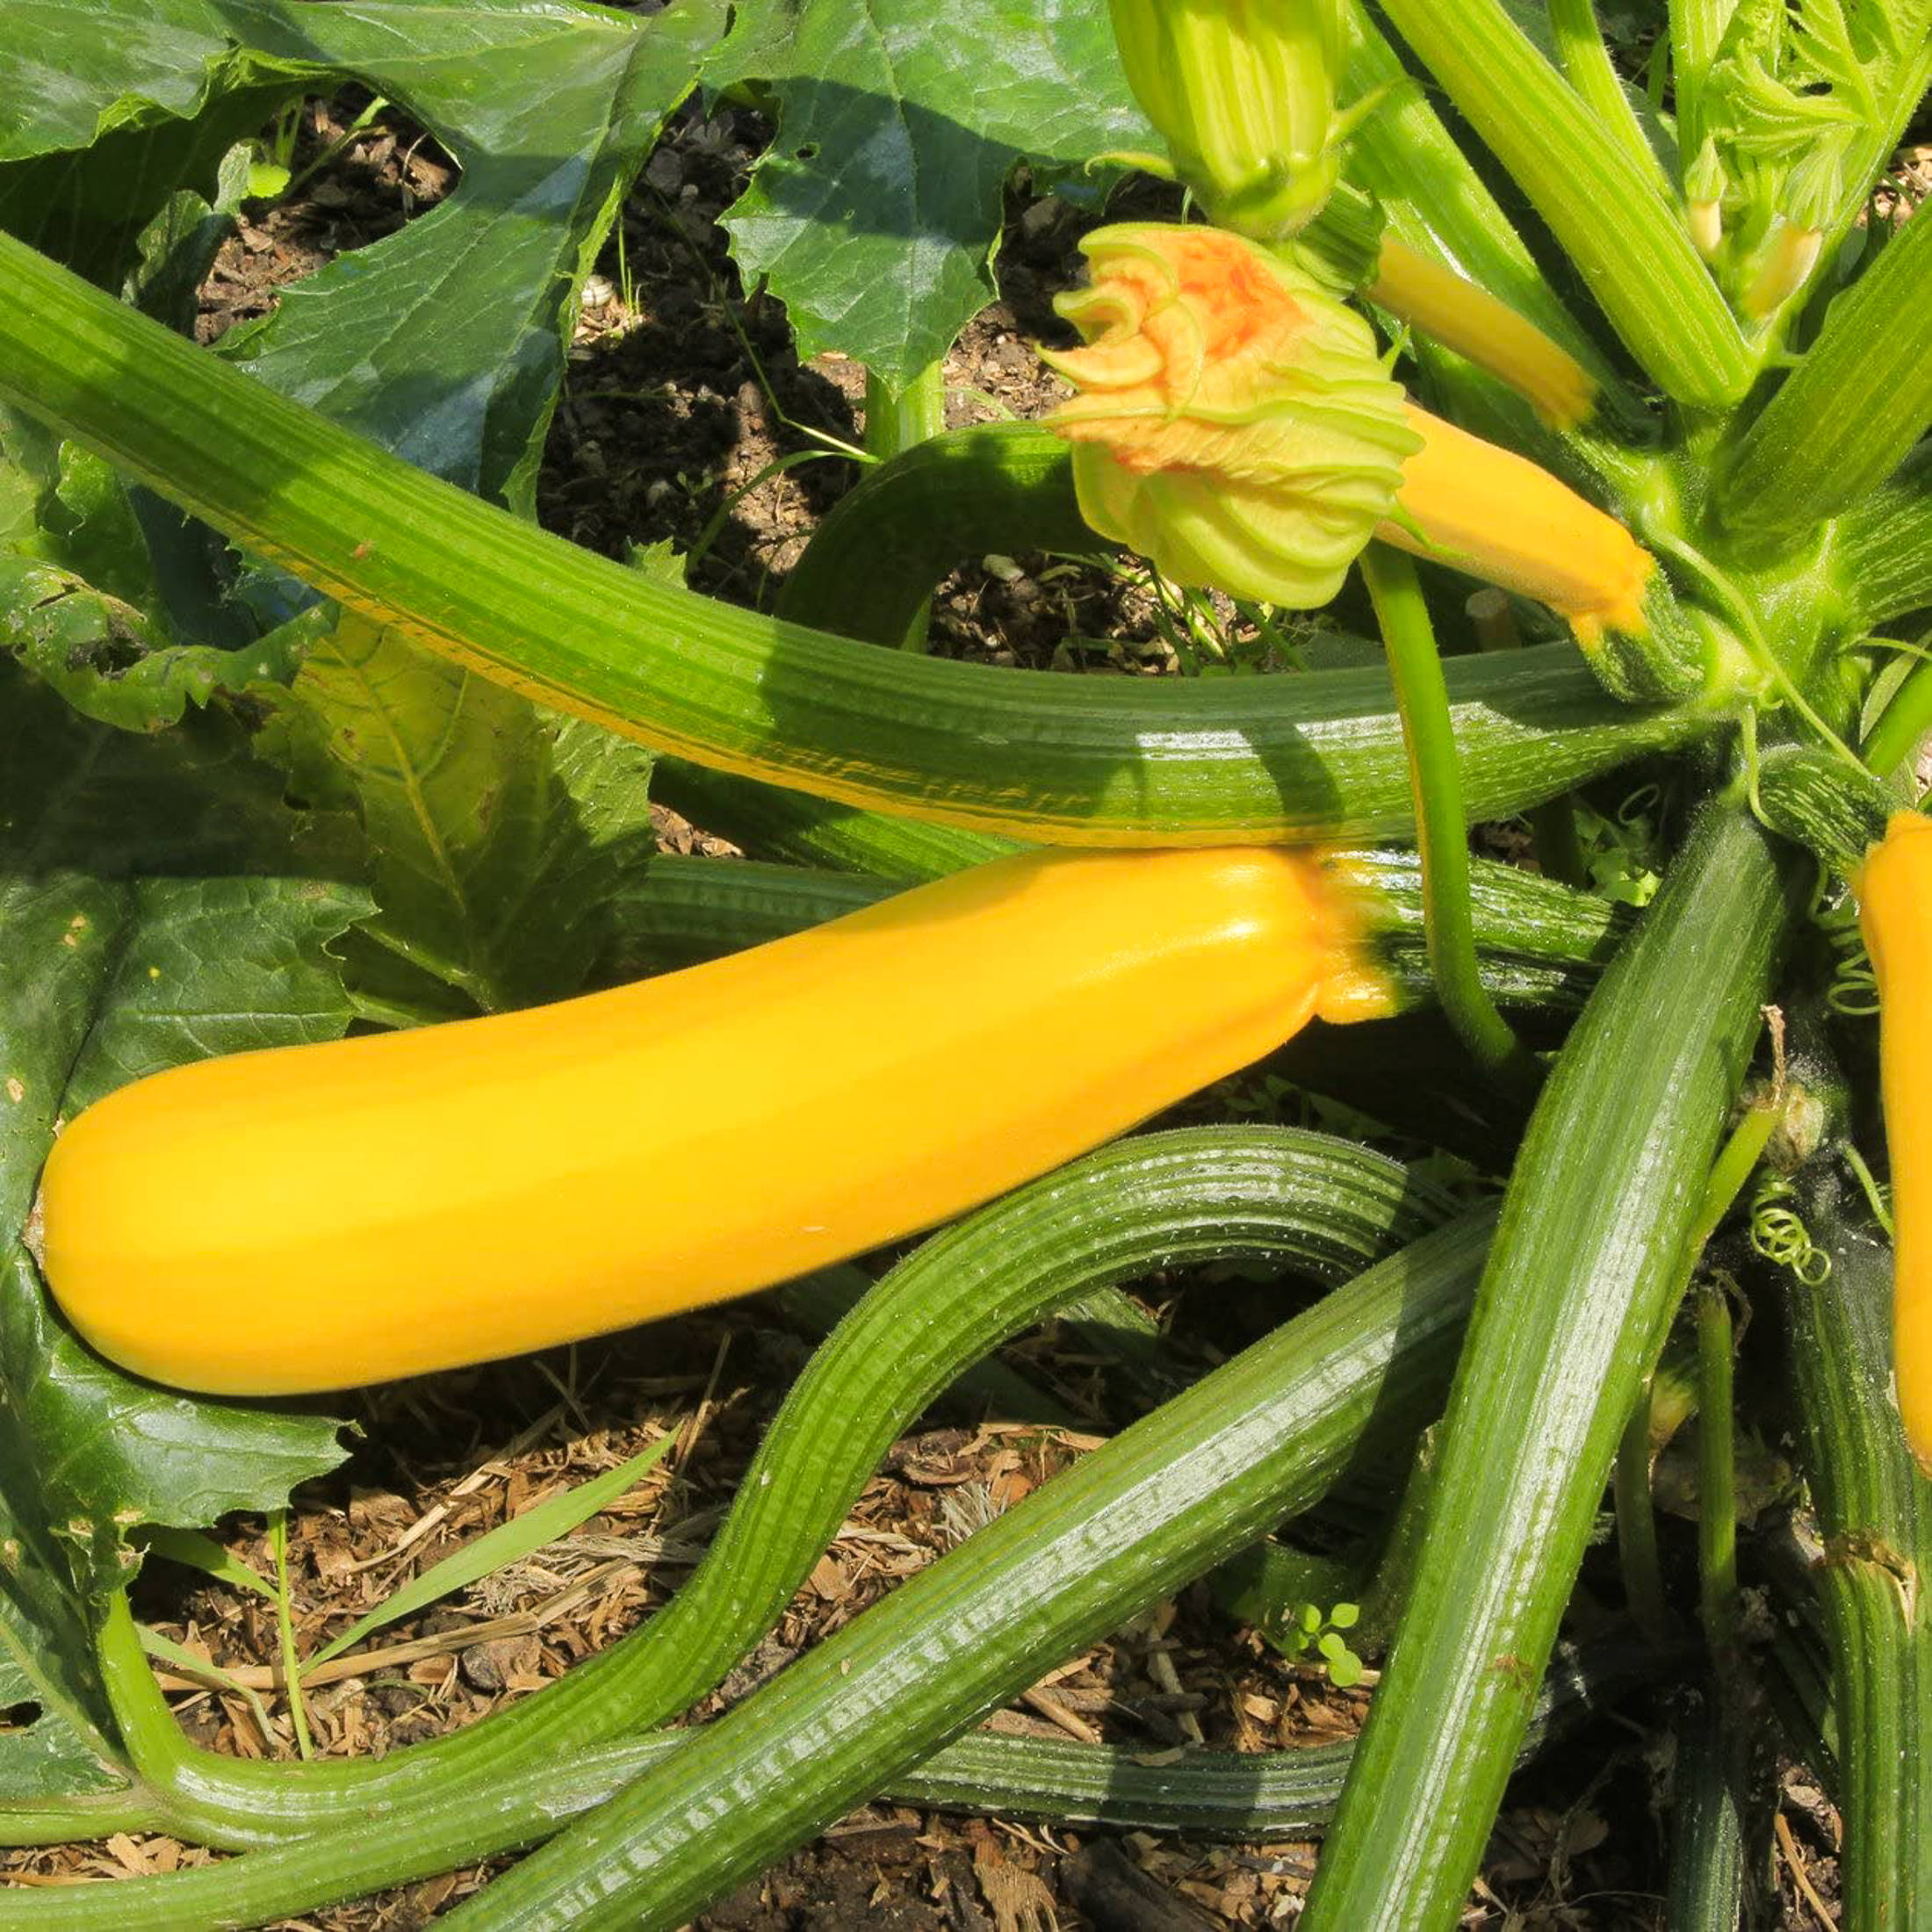 courgette-GOLD-RUSH.jpg